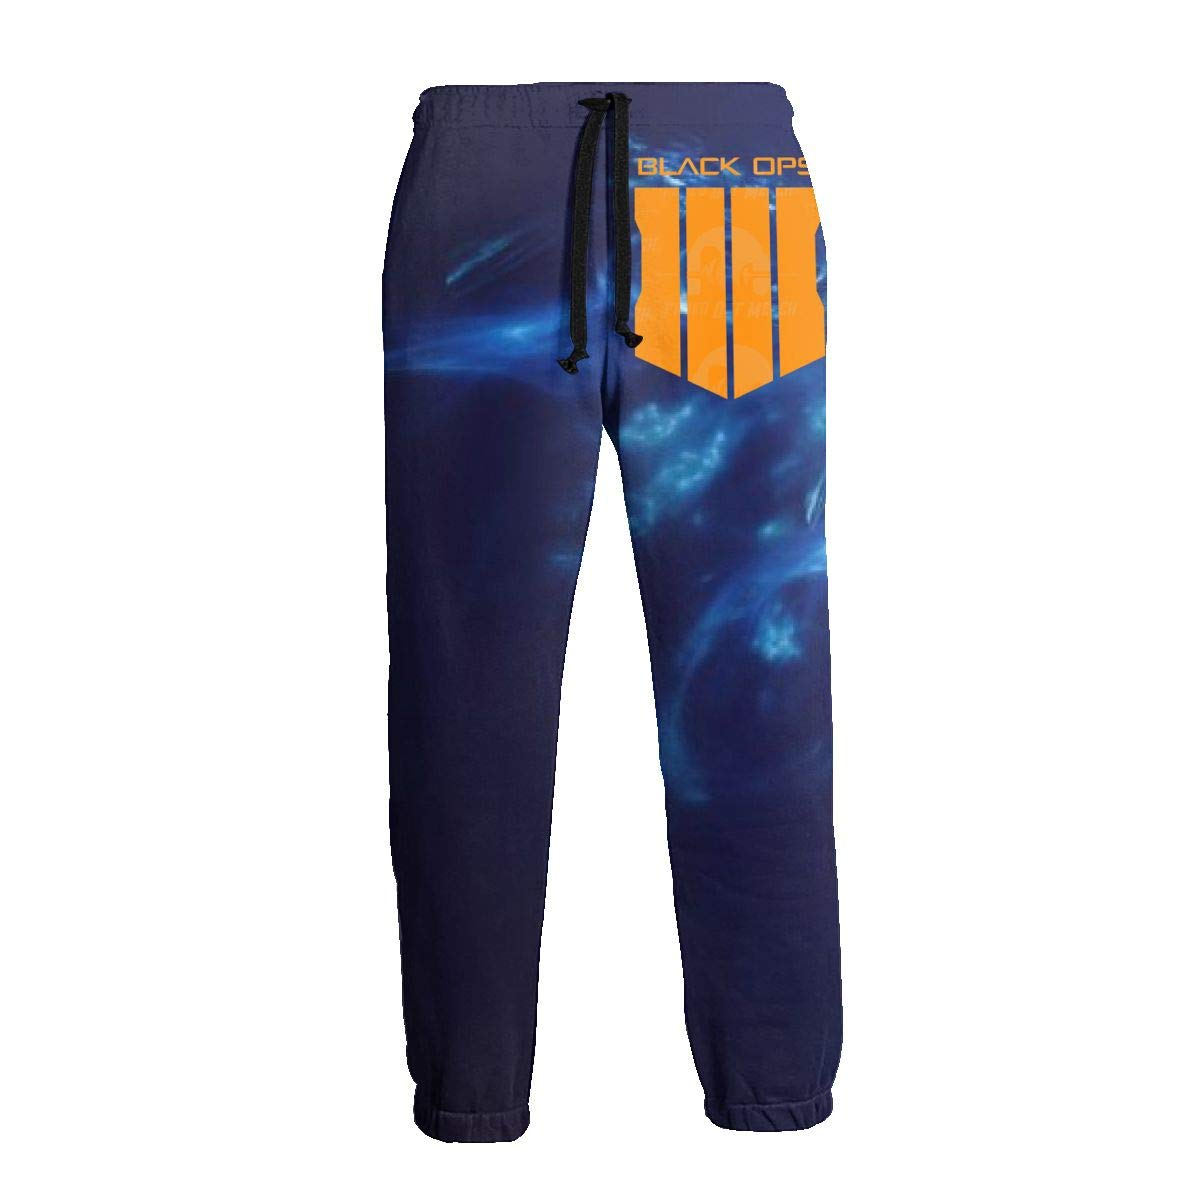 Mens 3D Print Graphic Call of Duty Black Ops 4 Long Sleeve Loose Fit Jogger Sweatpants